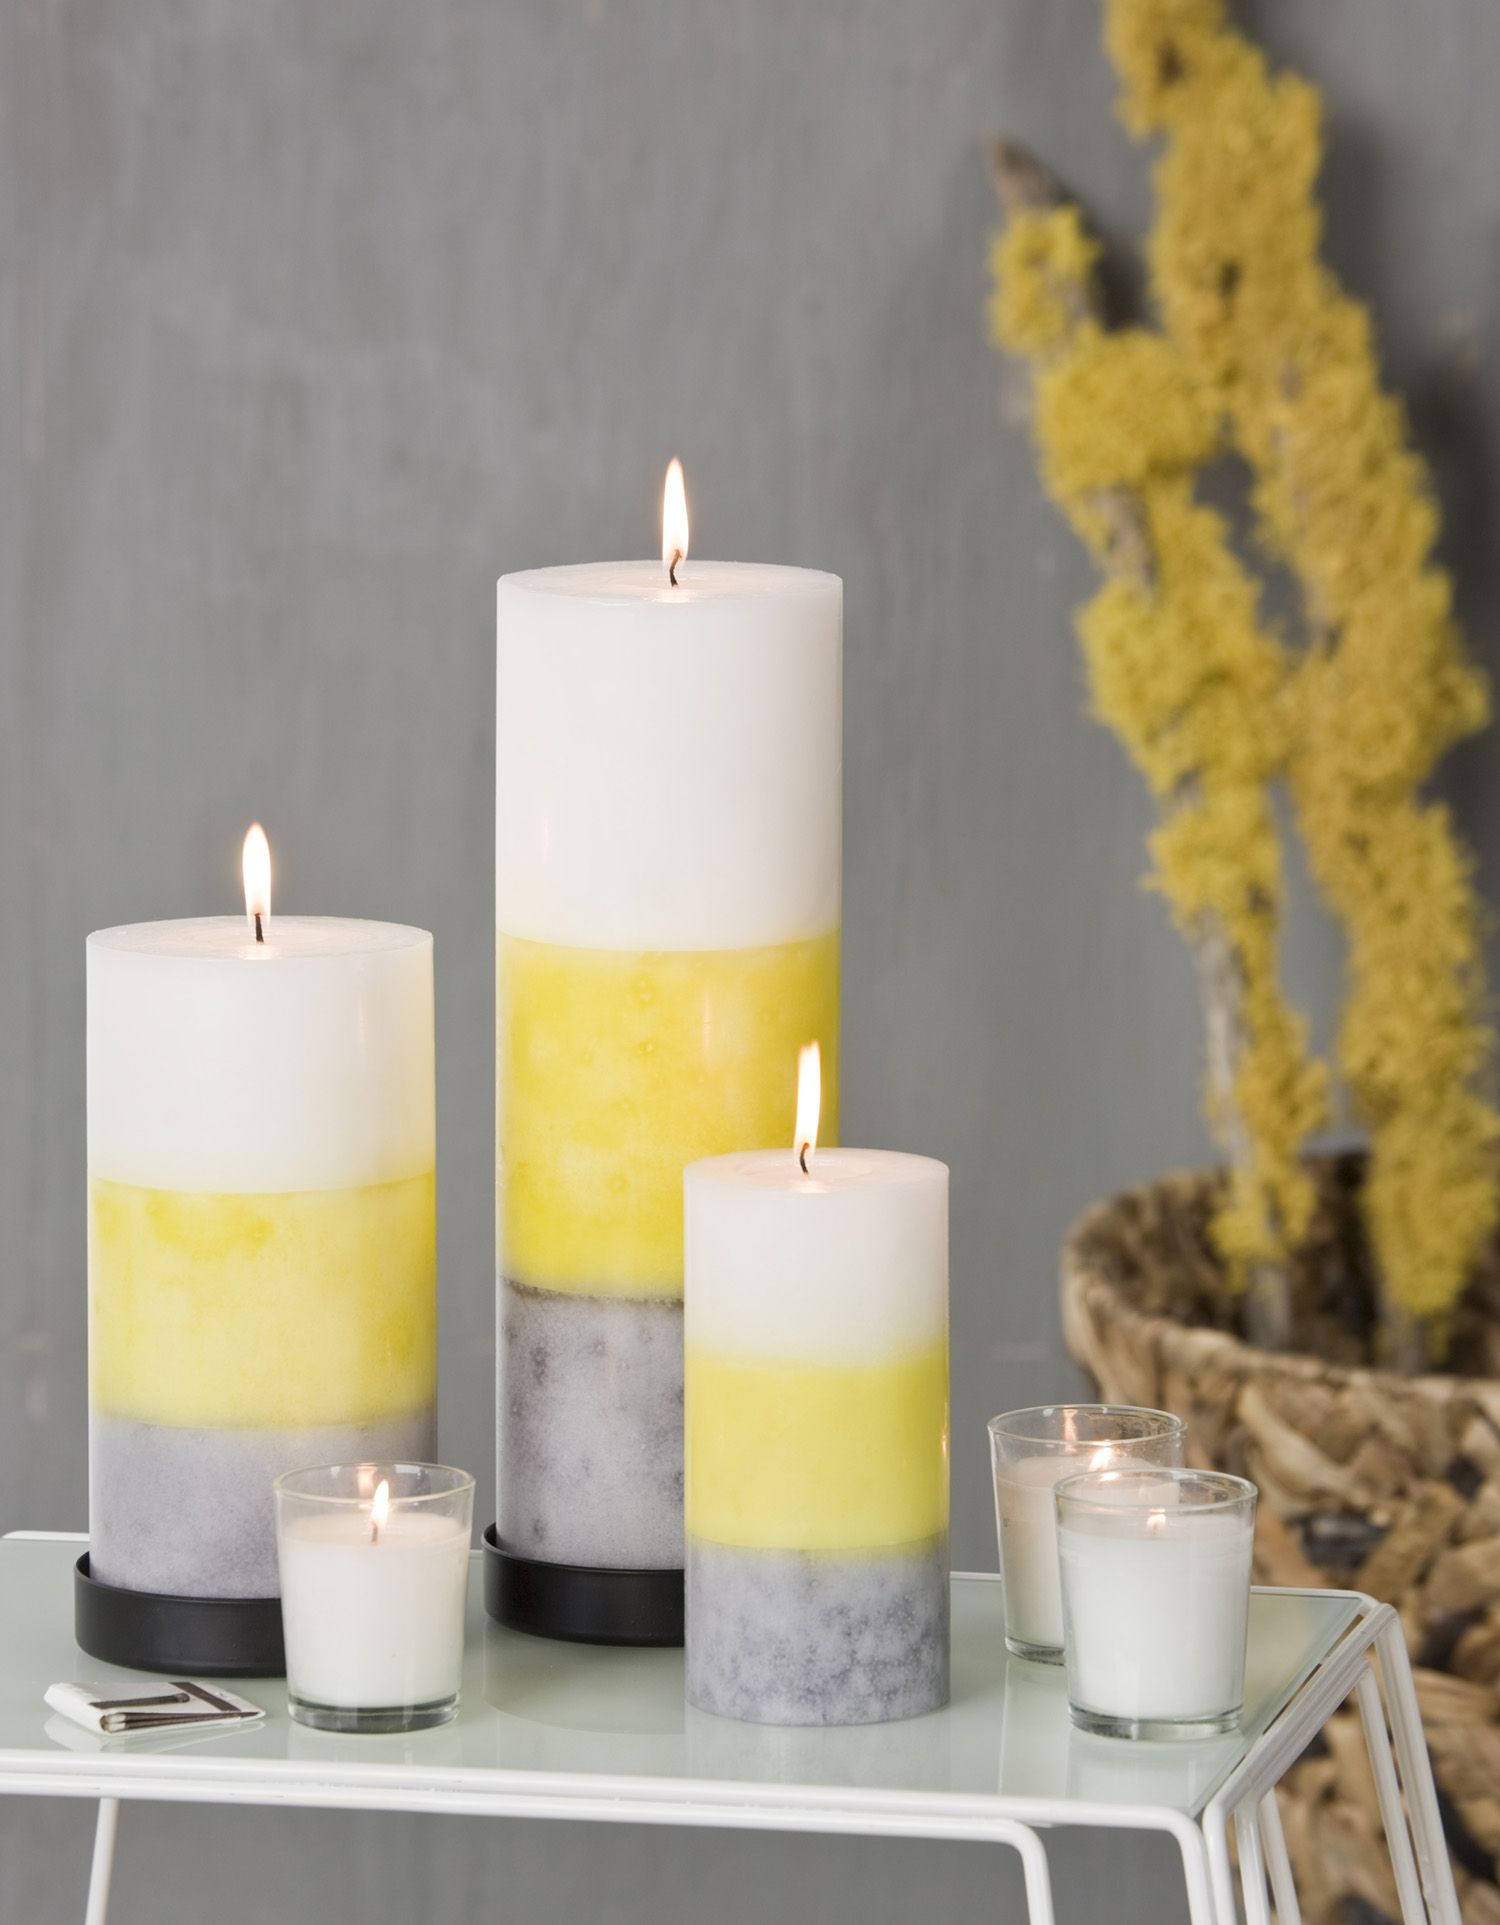 Decorative Candle Holders Pillar Candles In Shades Of Grey Citron And White Blissliving